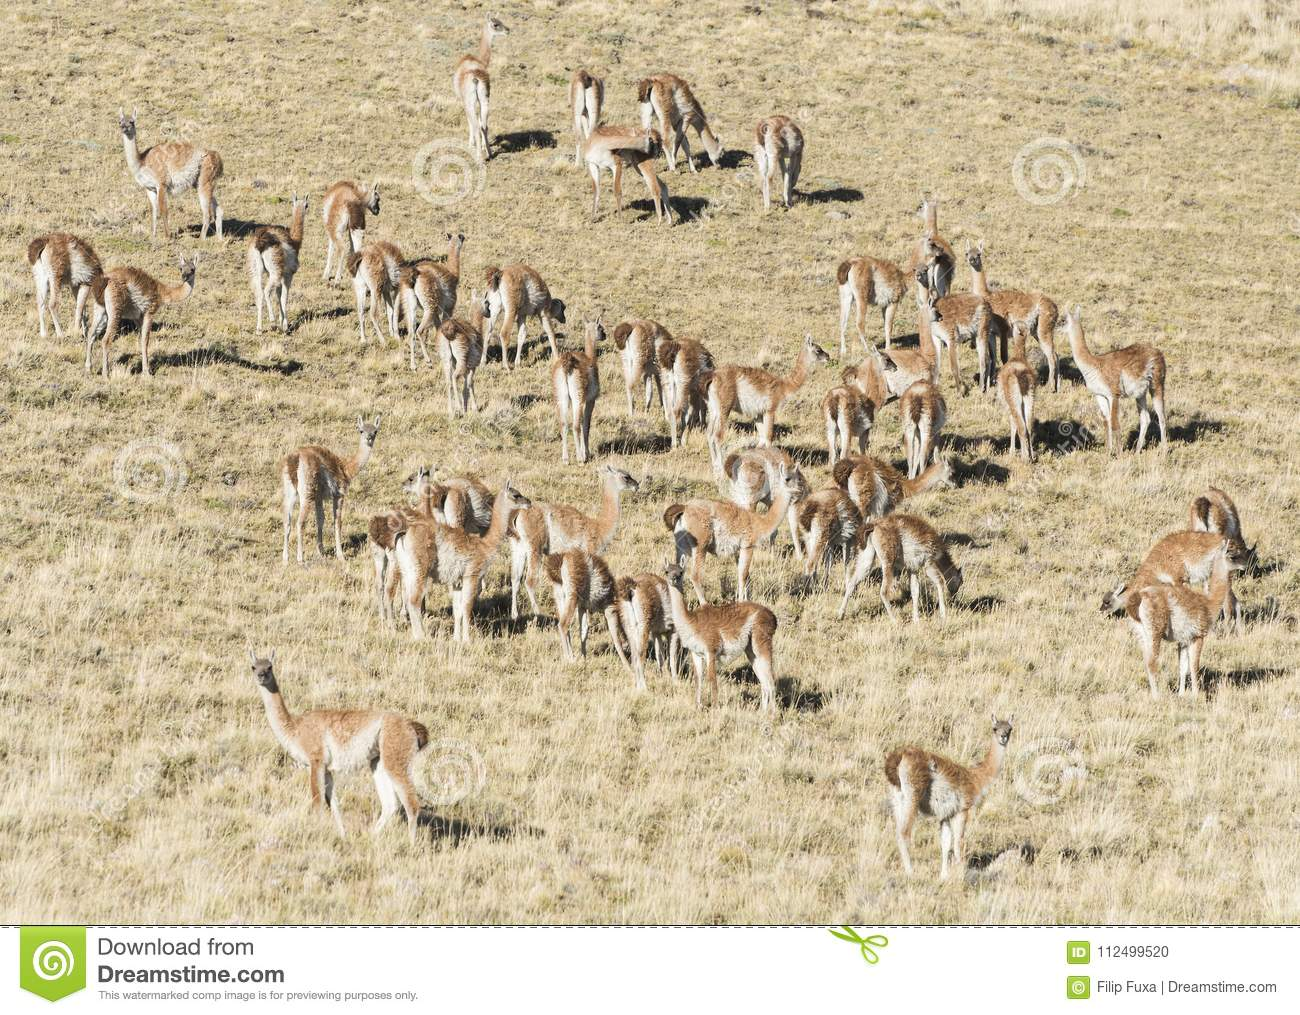 f02adf123 Large herd of wild curious guanaco lamas Lama guanicoe in the endless grass  pampas of Tierra del Fuego, Argentina